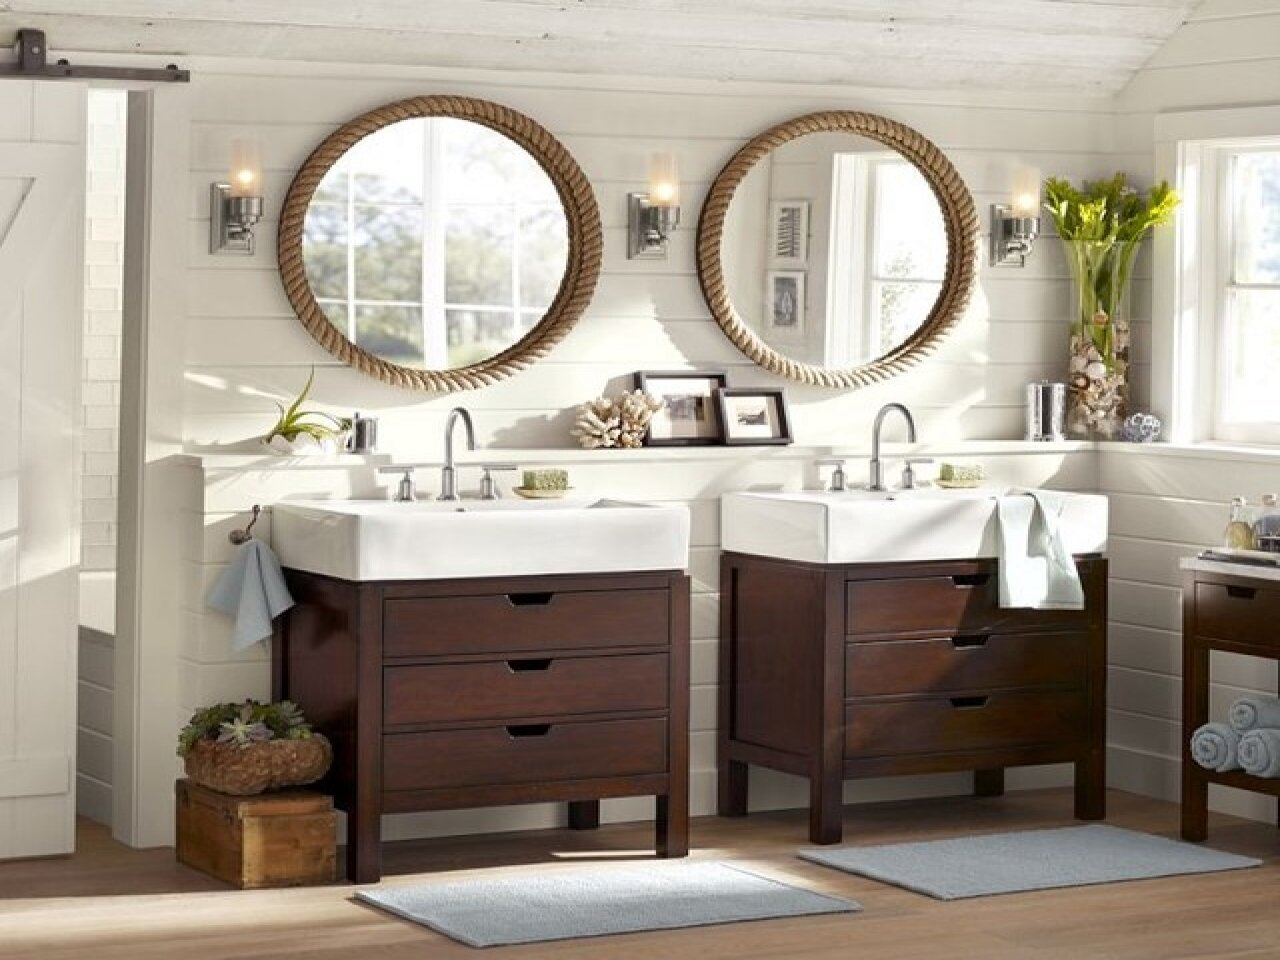 Pottery Barn Vanity | Pottery Barn Mason Vanity | Console Sink with Shelf